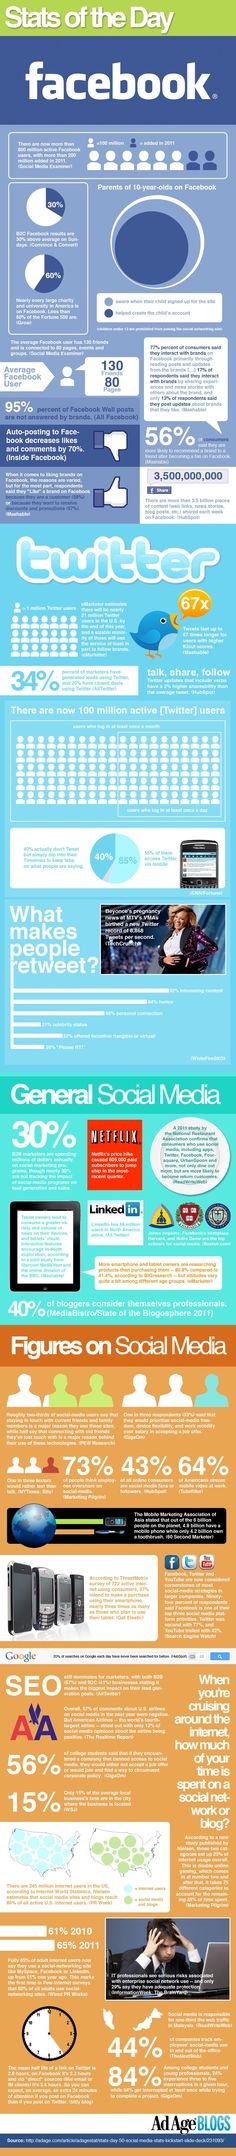 Facebook, Twitter, LinkedIn – The Social Media Statistics Of Today [INFOGRAPHIC]